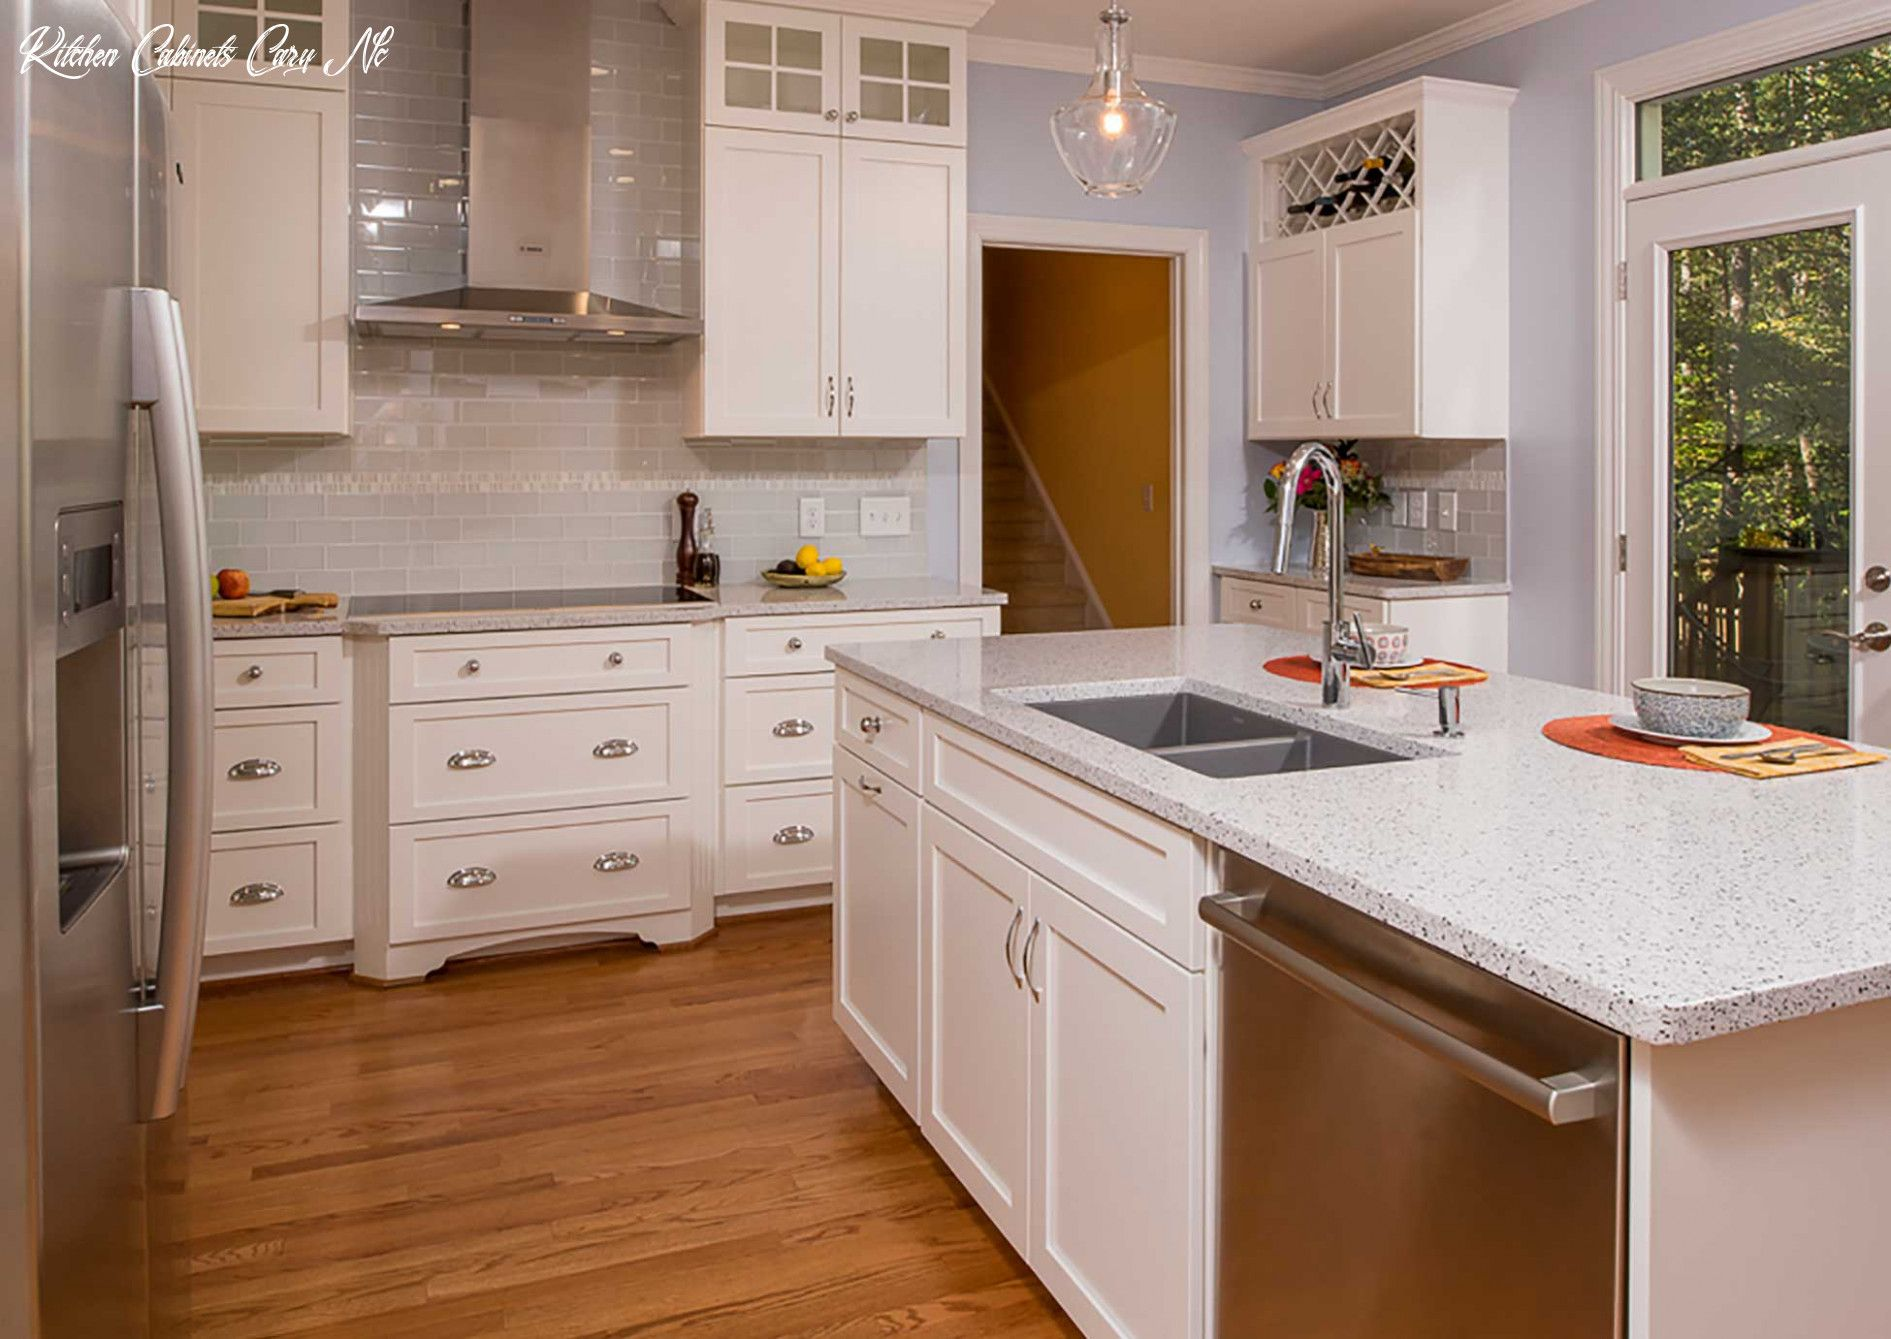 Kitchen Cabinets Cary Nc In 2020